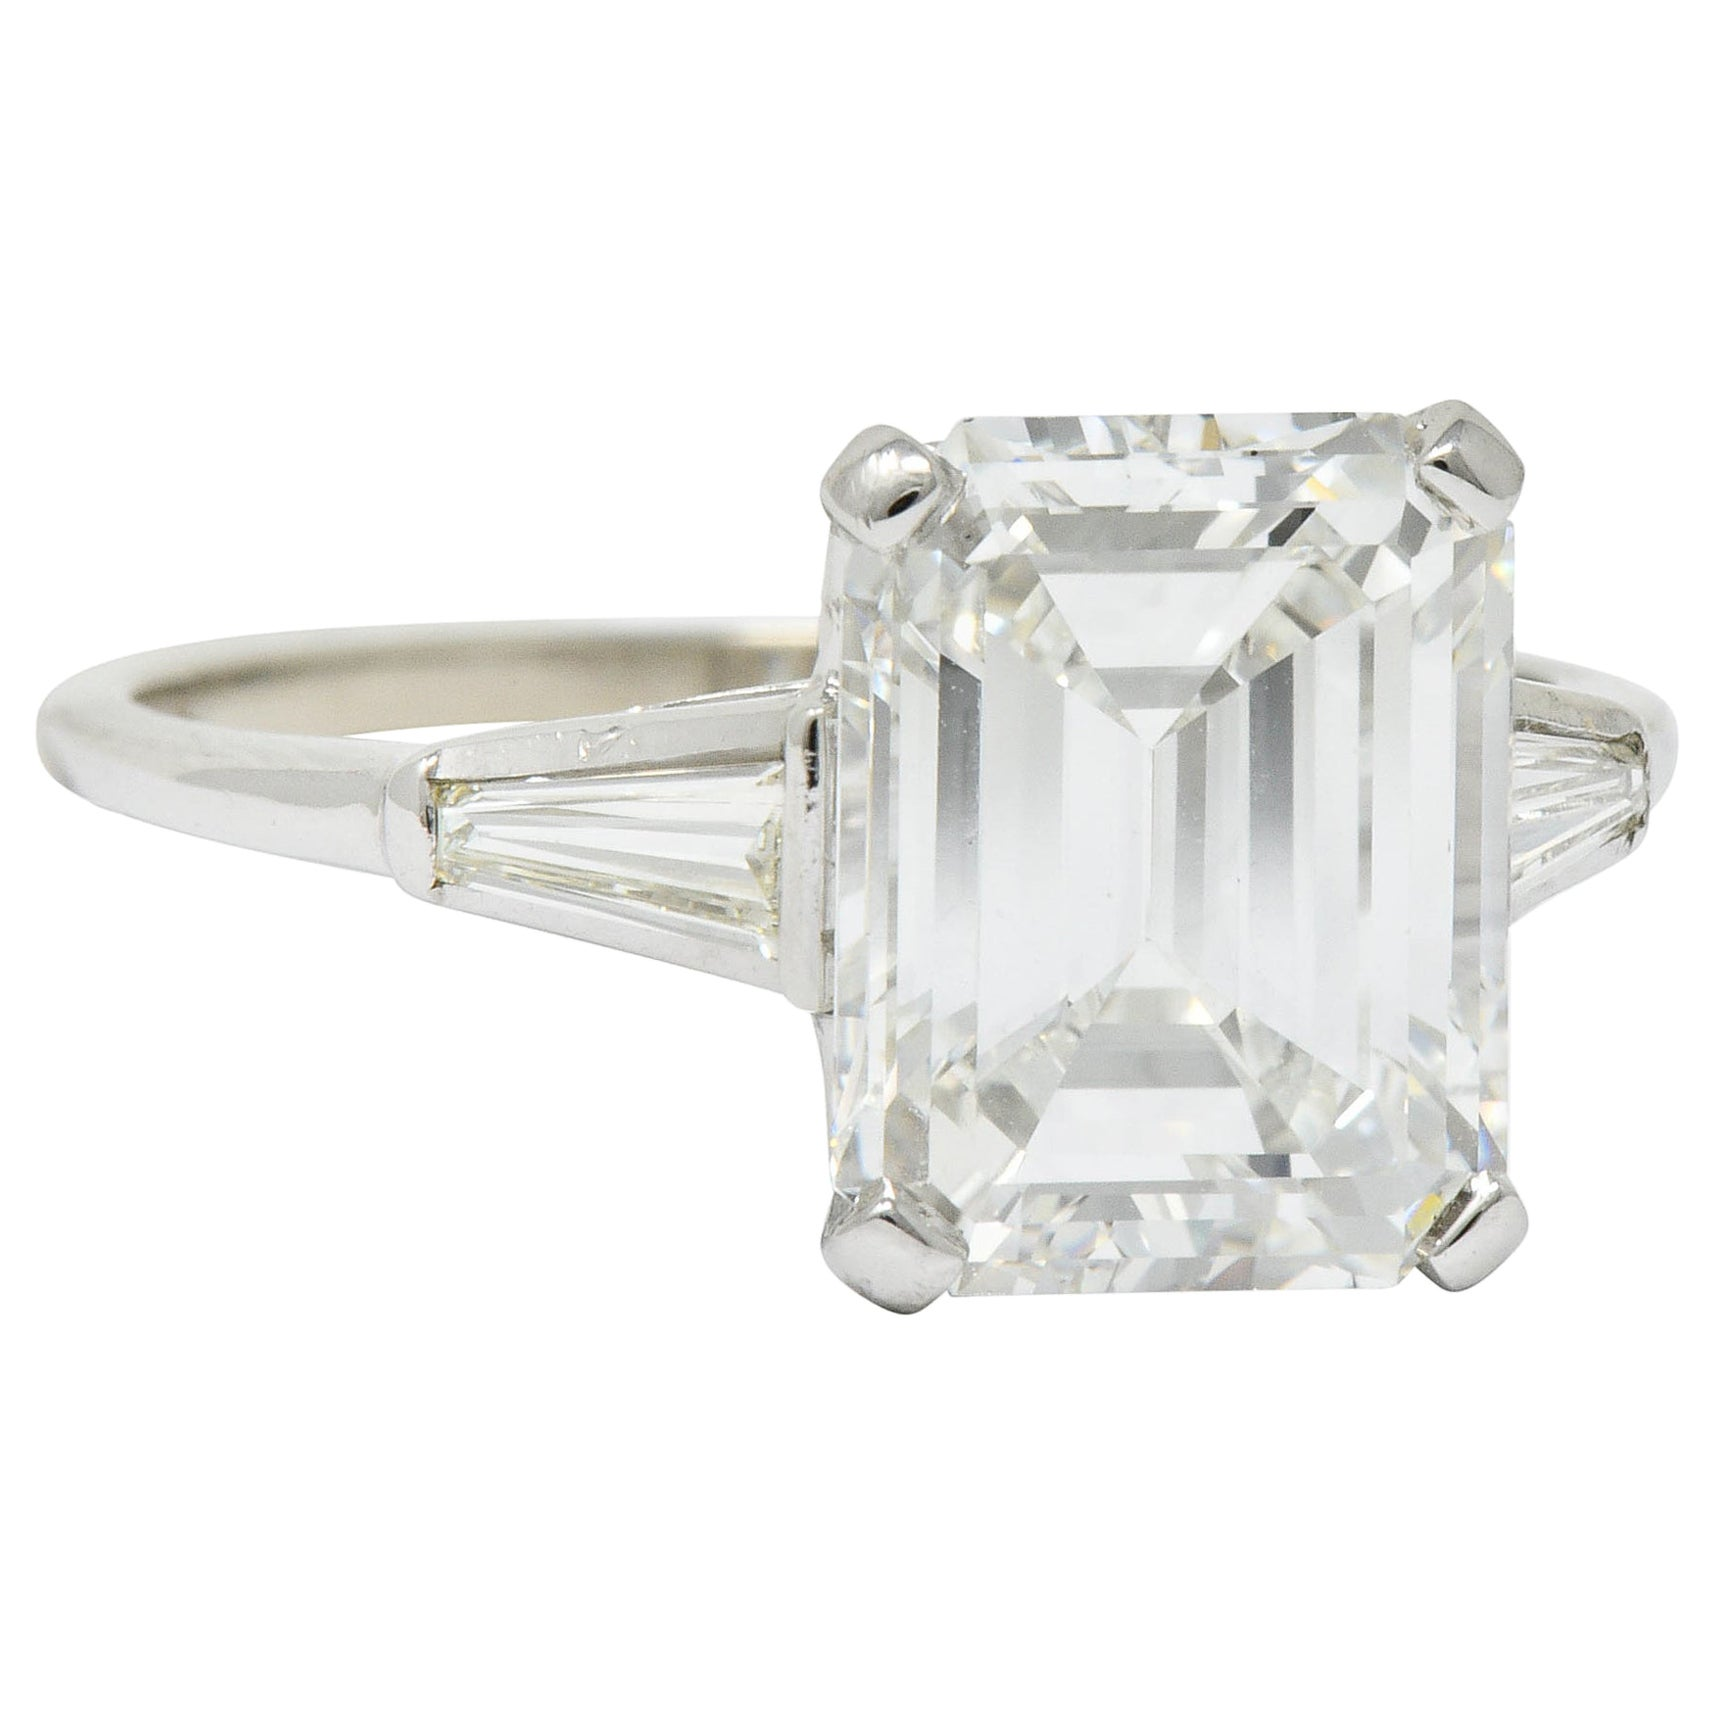 Substantial 4.58 Carat Emerald Cut Diamond Platinum Engagement Ring GIA